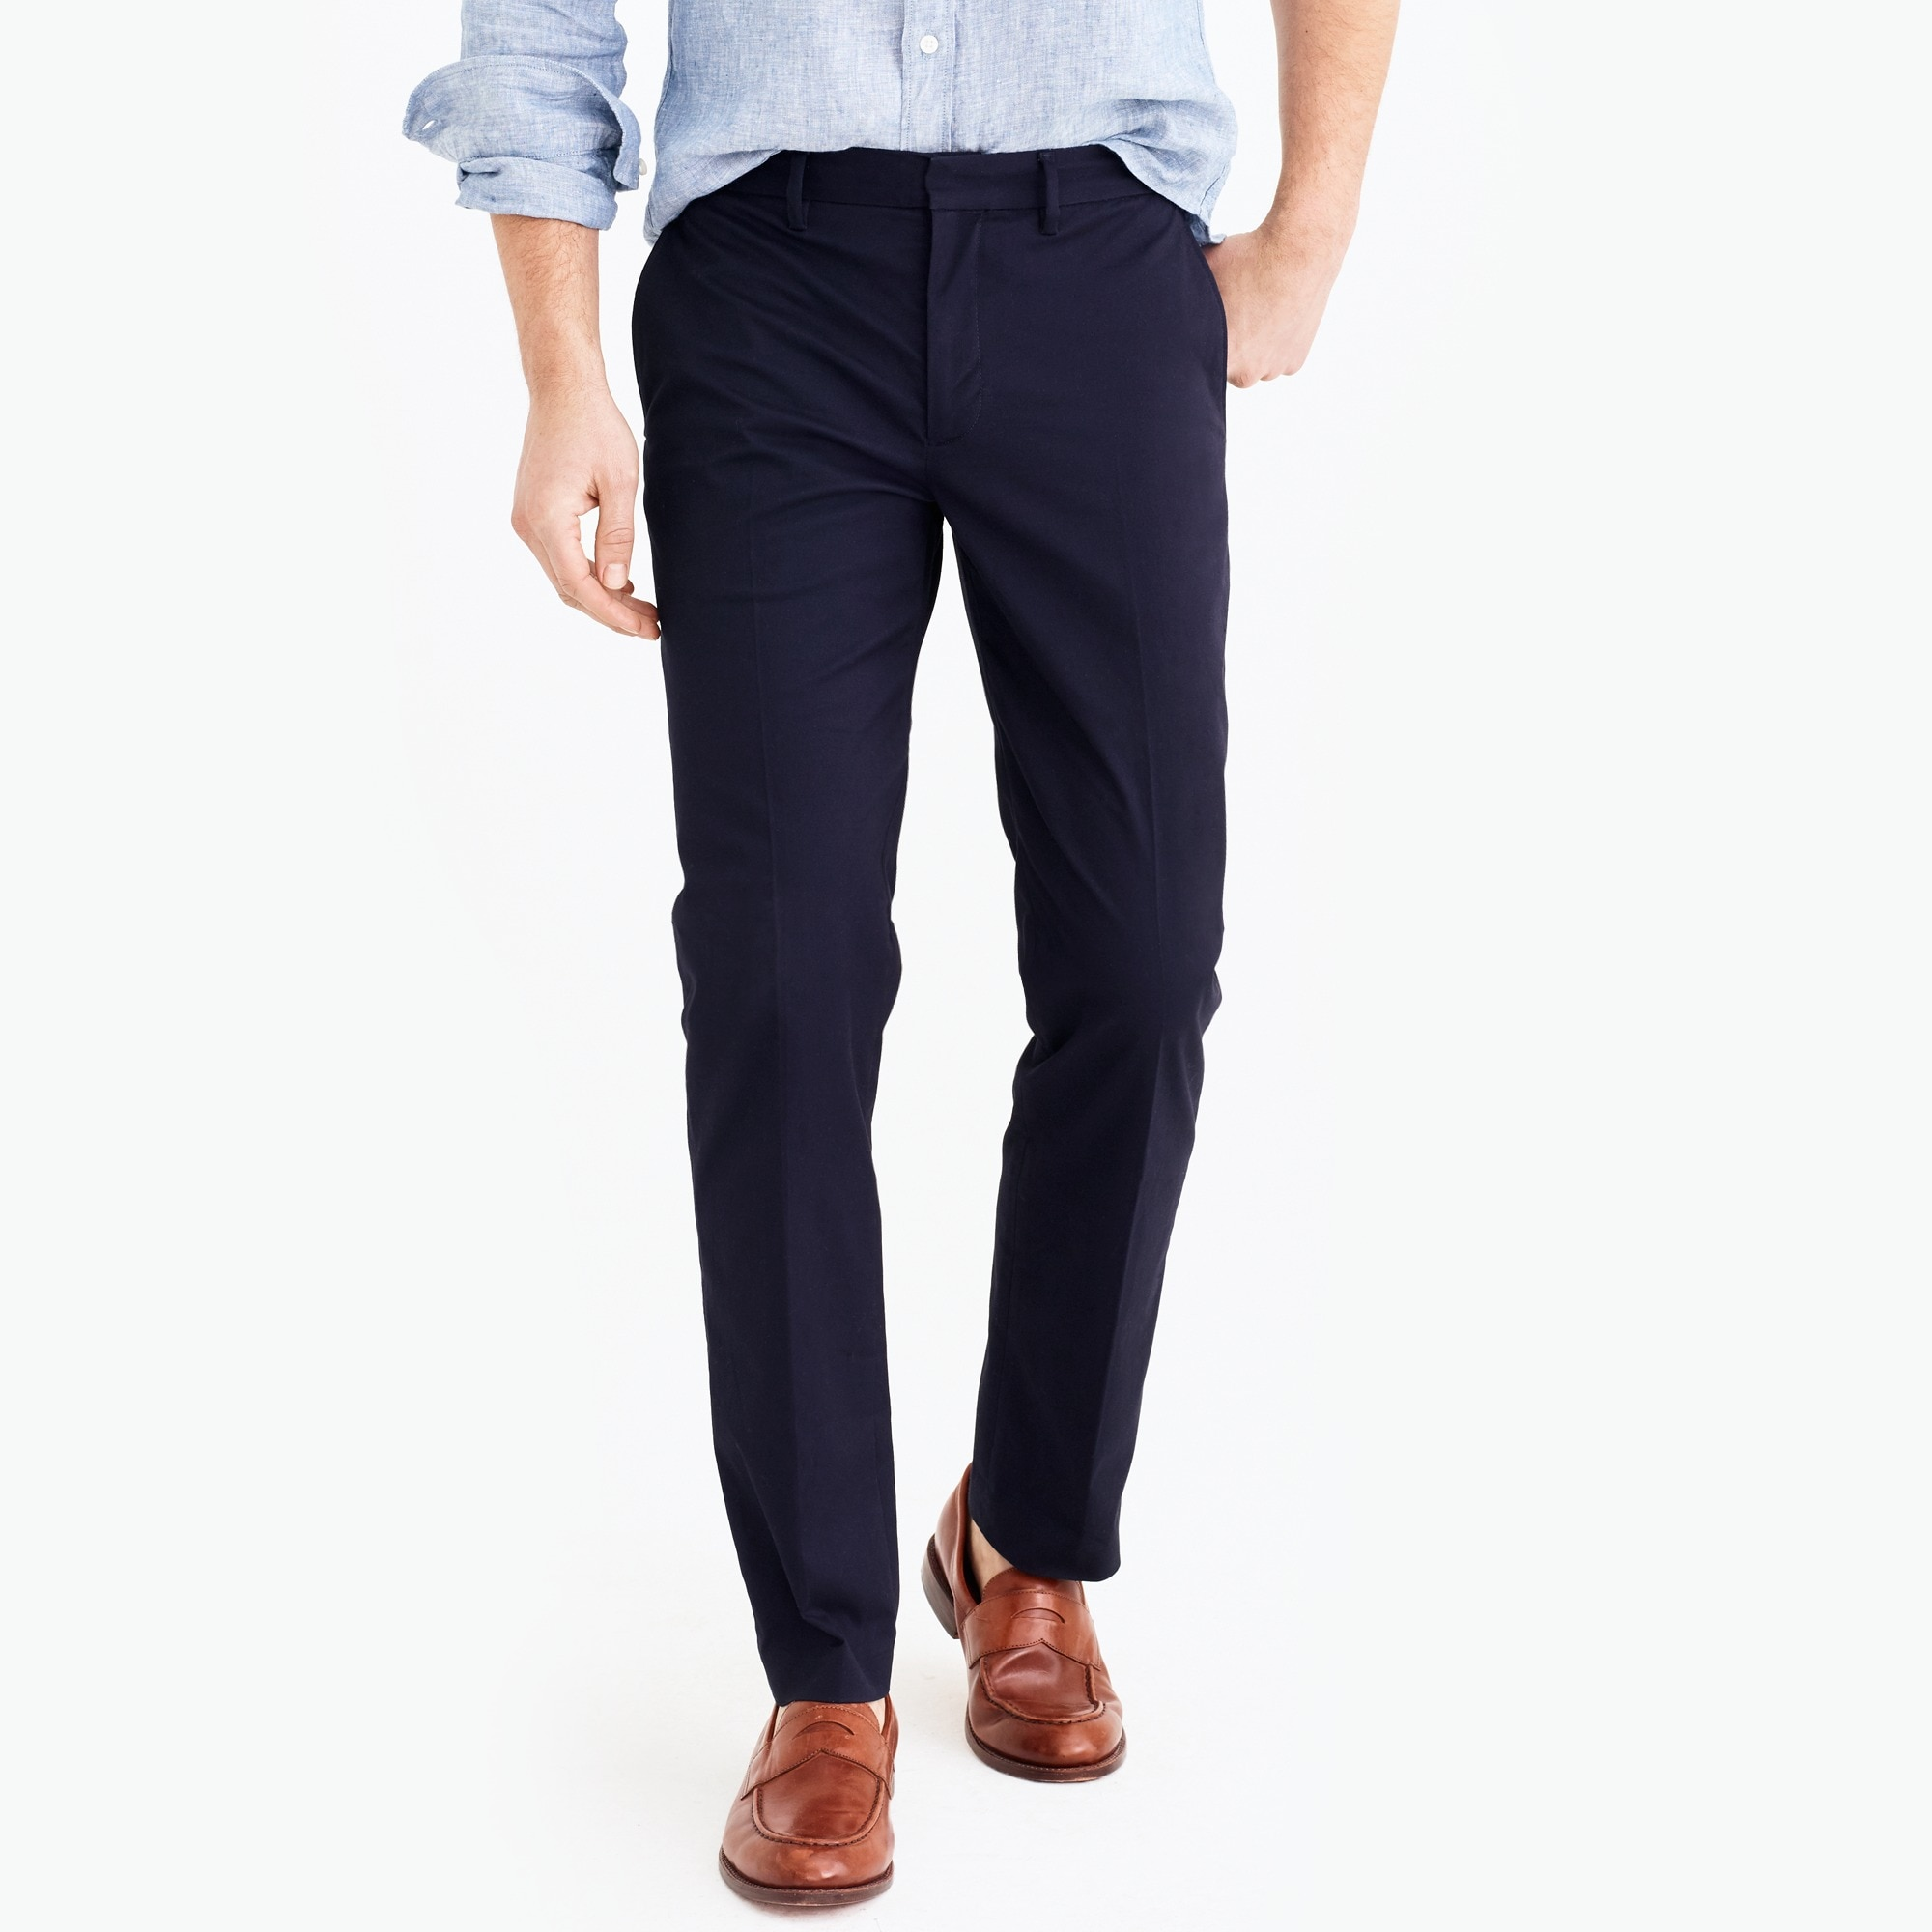 Image 1 for Flex Bedford dress chino